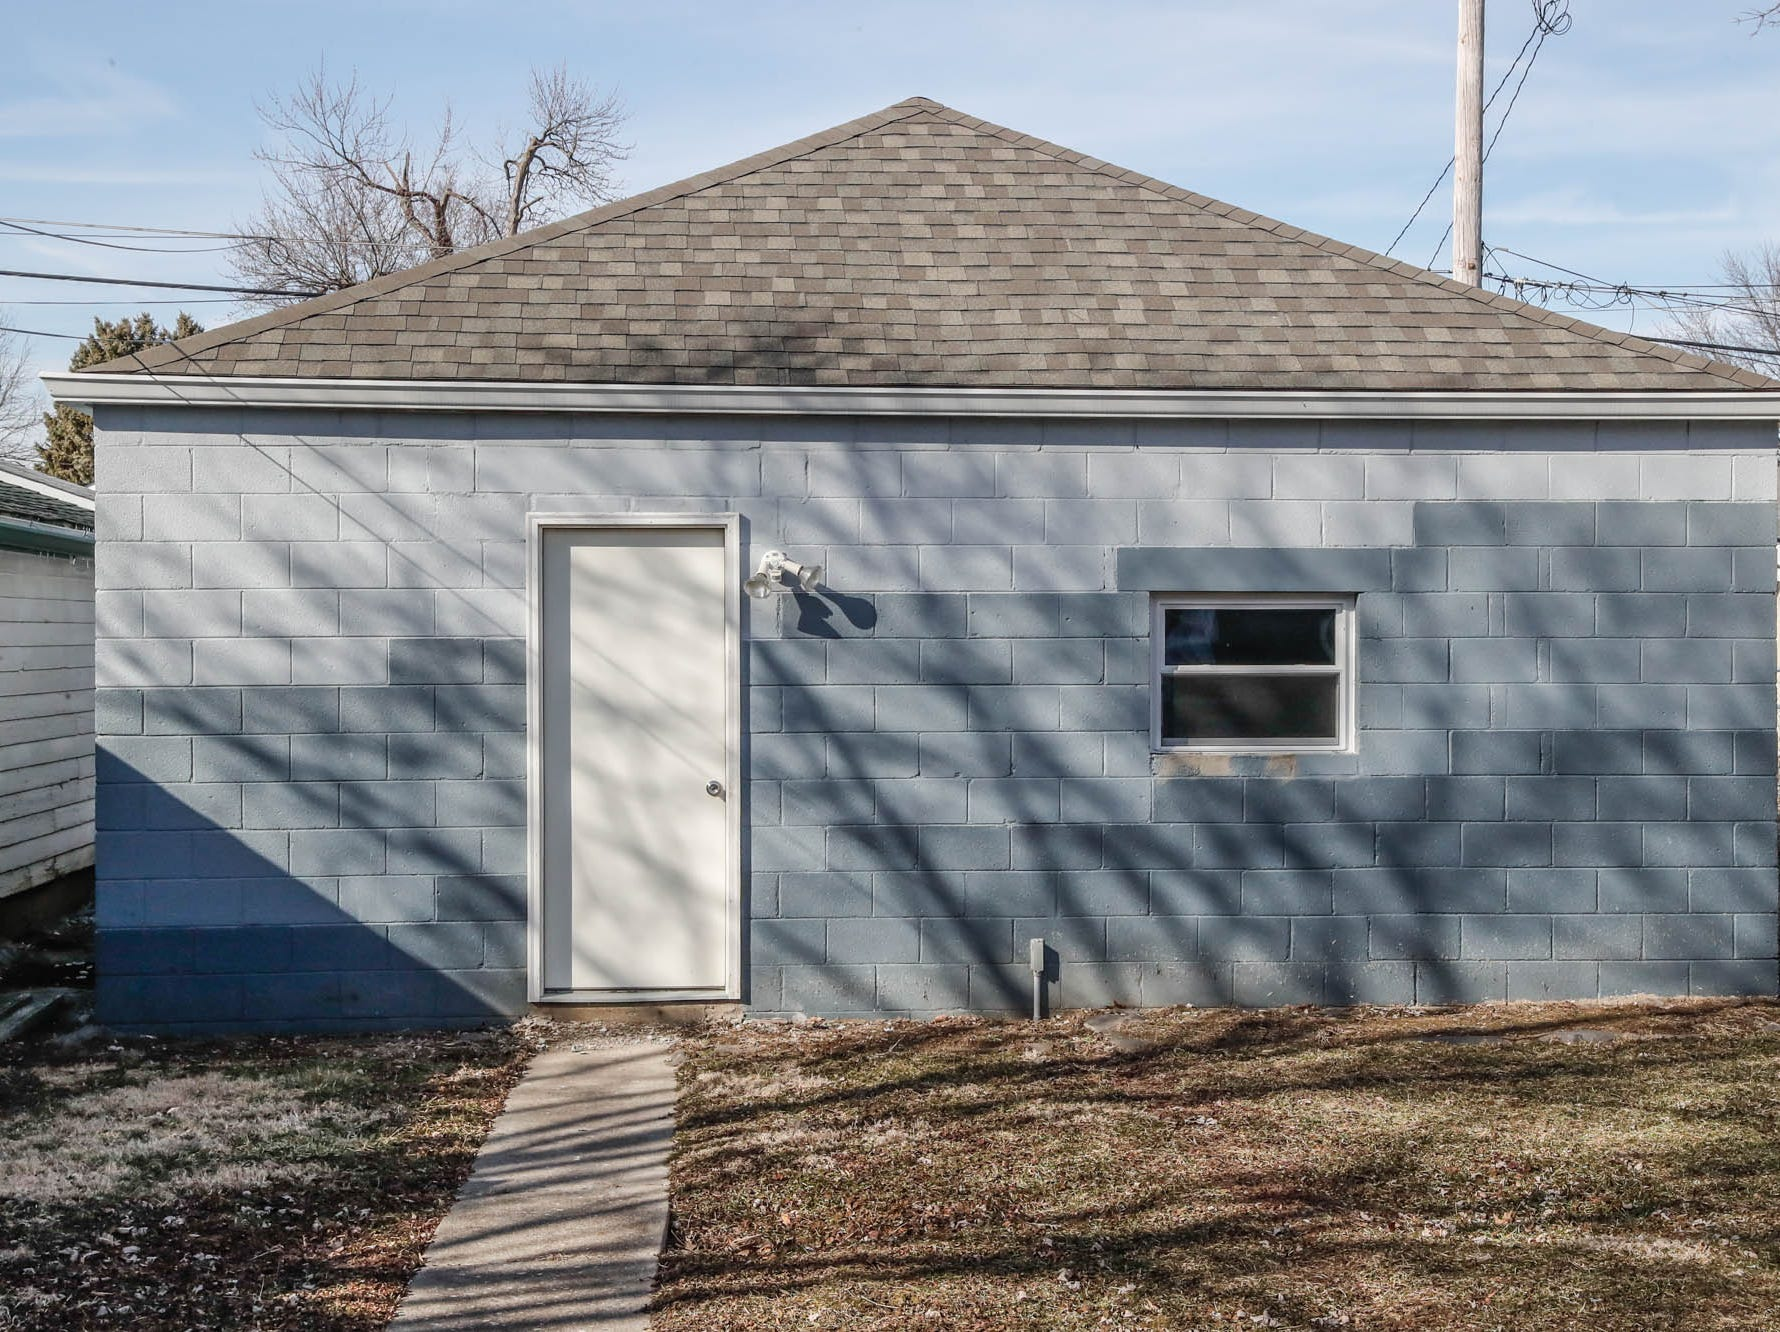 A newly remodeled home with an unattached garage, on Cruft St., affectionally known as the 'gray house' is part of the Big Car Collaborative and Riley Area Development affordable artist home ownership program on the near south side of Indianapolis on Wednesday, March 6, 2019. The renovation of this home was done by Axis Architecture and Big Car board member Ursula David. The goal of the Artist and Public Life Residency (APLR), will be to provide artists with home ownership while they work and collaborate with the greater community.